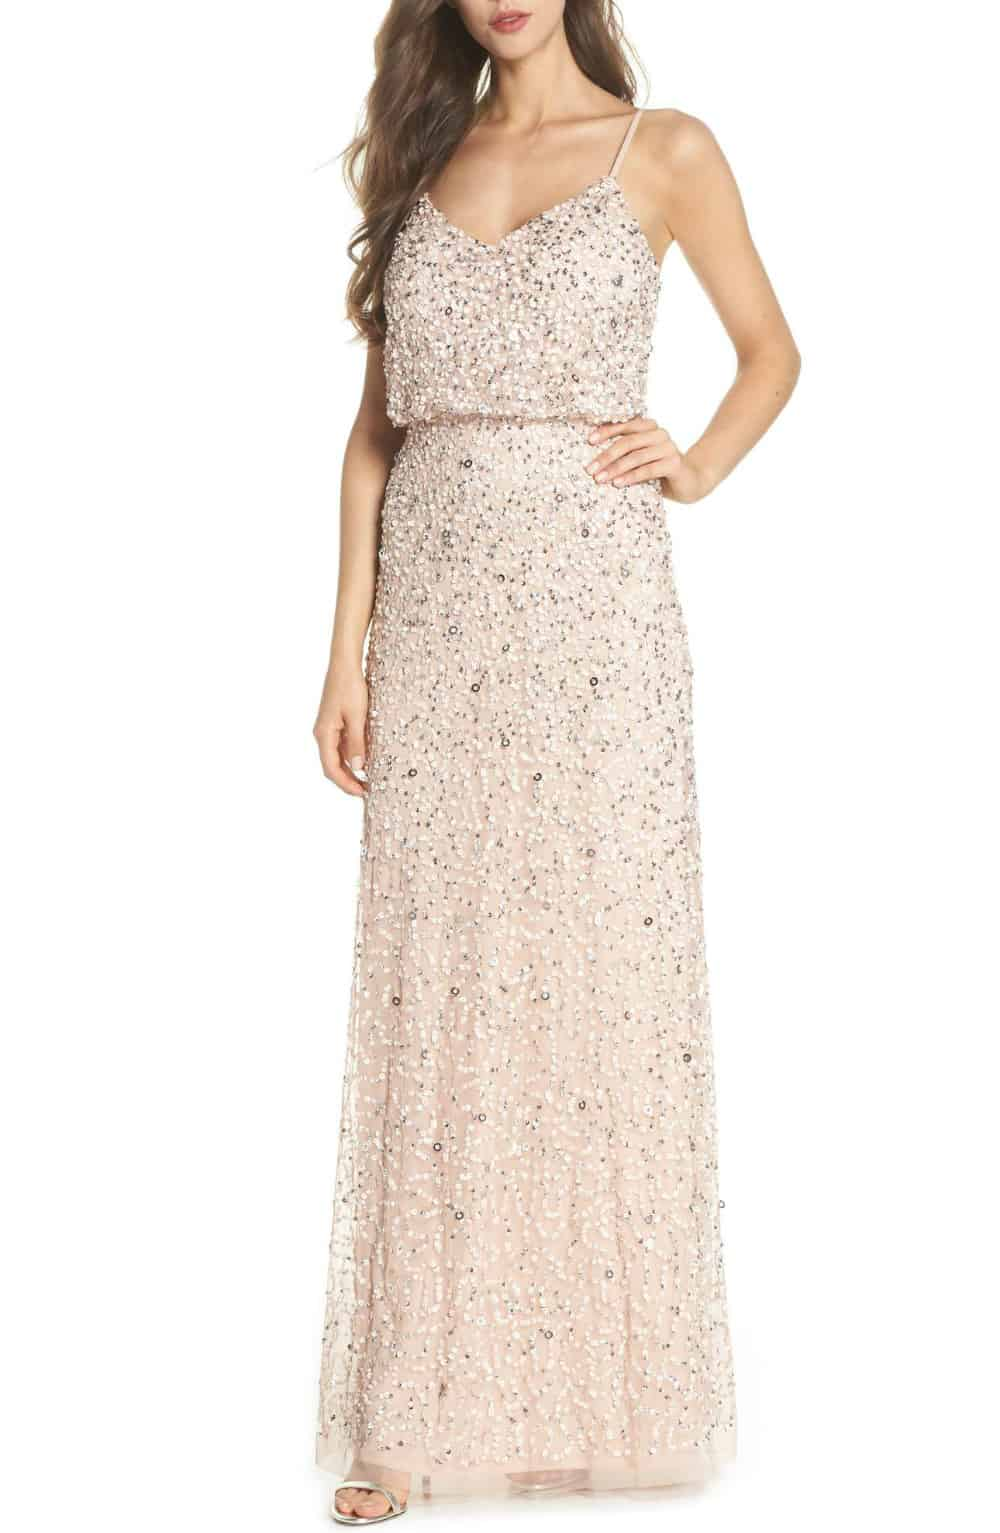 Blush Sequin Maxi Dress for Weddings